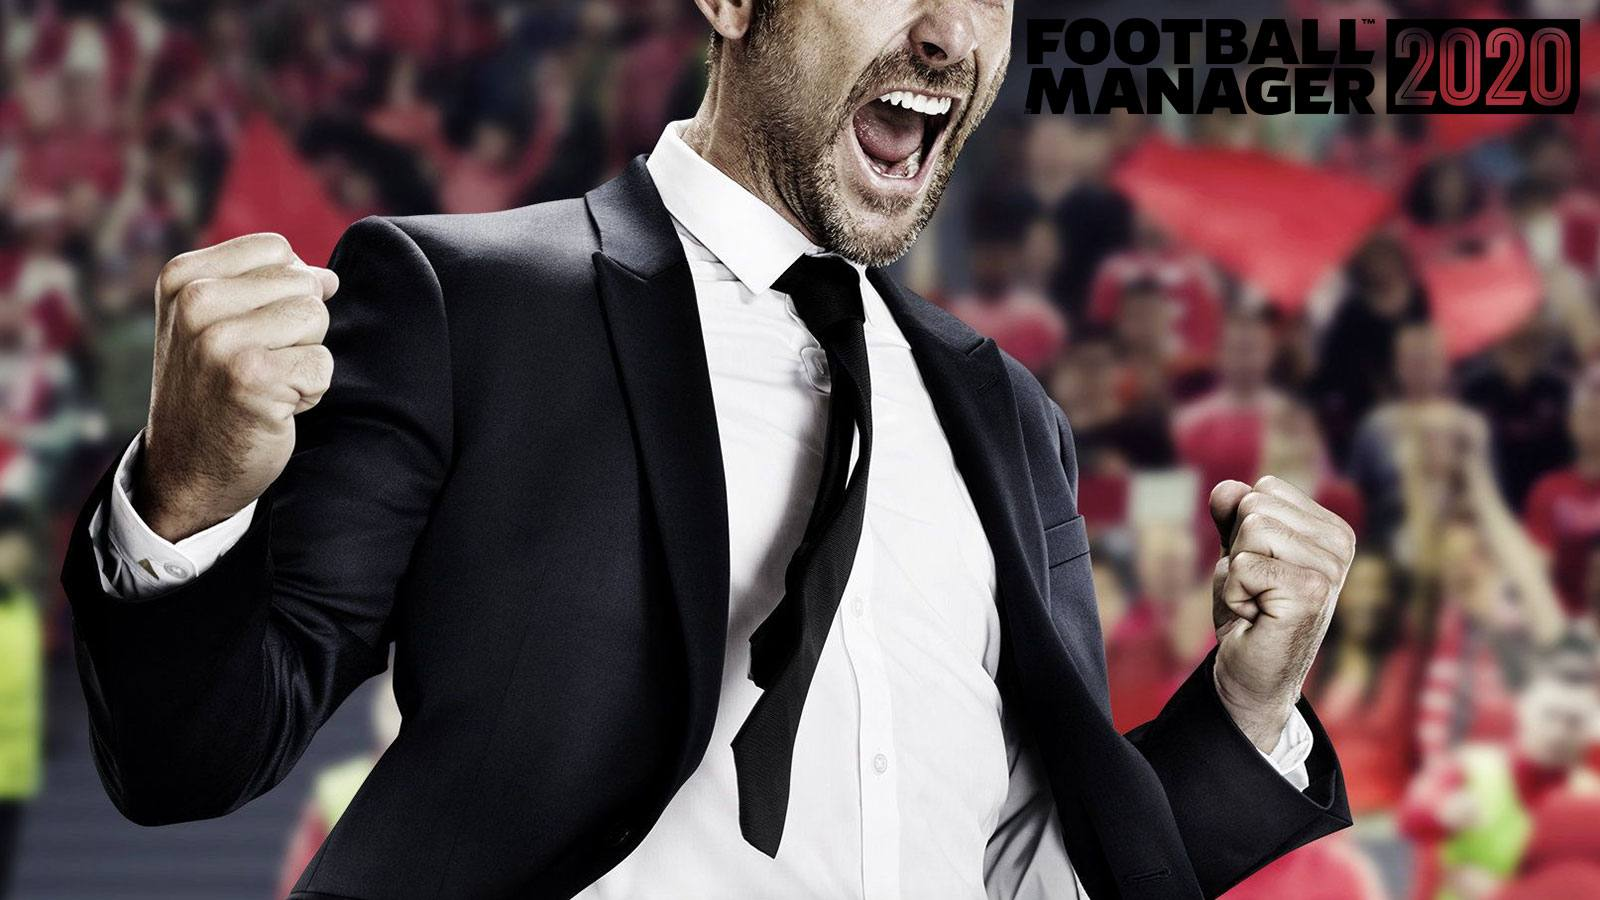 Football Manager 20 Sports Interactive